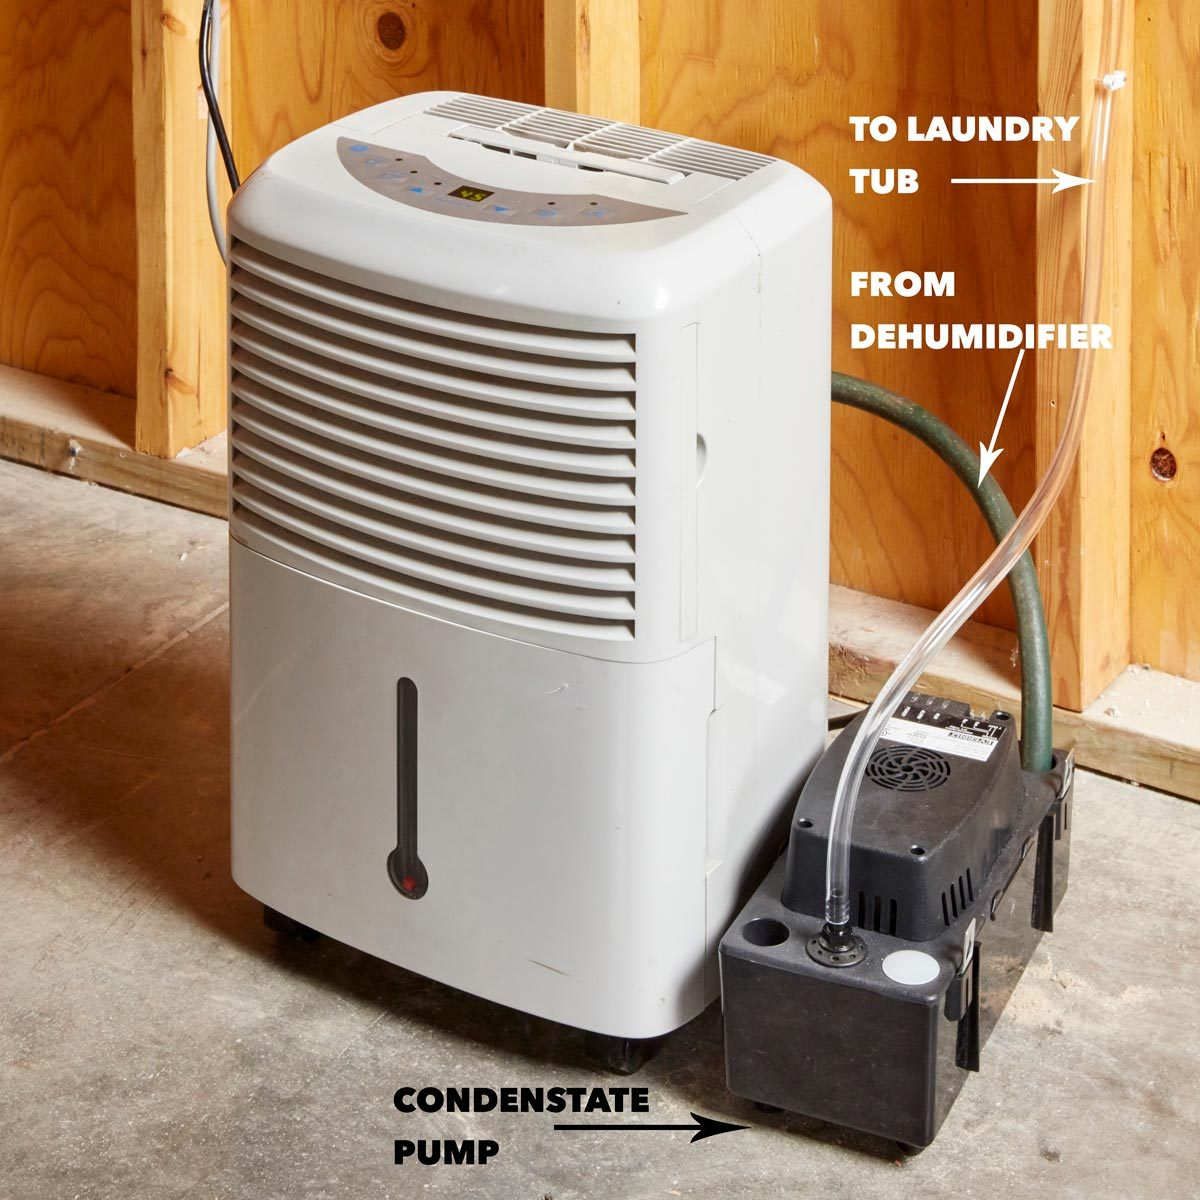 self-draining dehumidifier HH